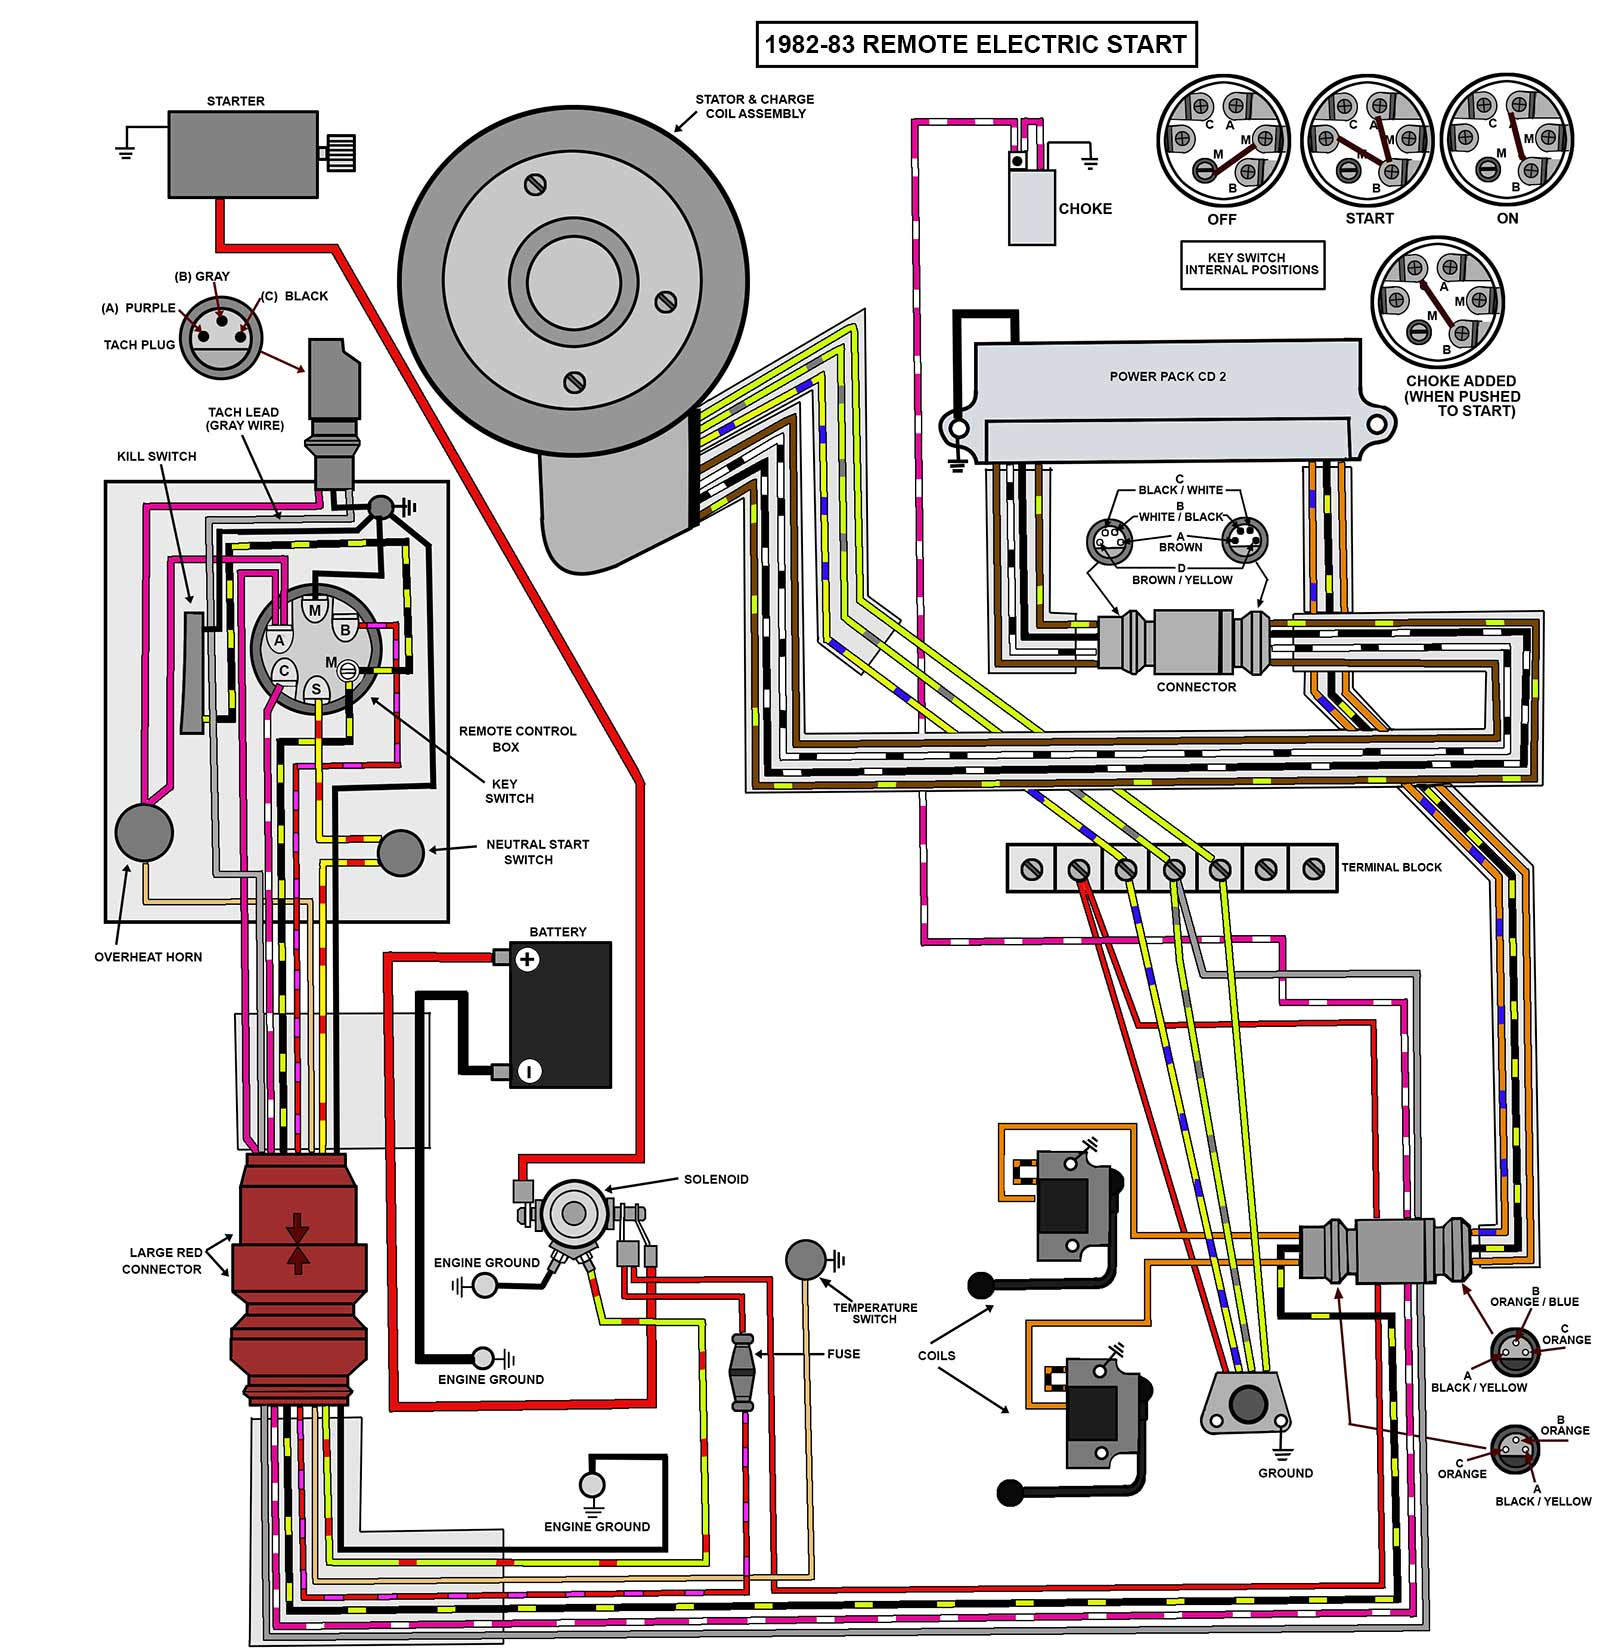 Omc Starter Solenoid Wiring Diagram Not Lossing Troy Built 12 Volt Diagrams Rh 37 Shareplm De Ezgo Briggs And Stratton